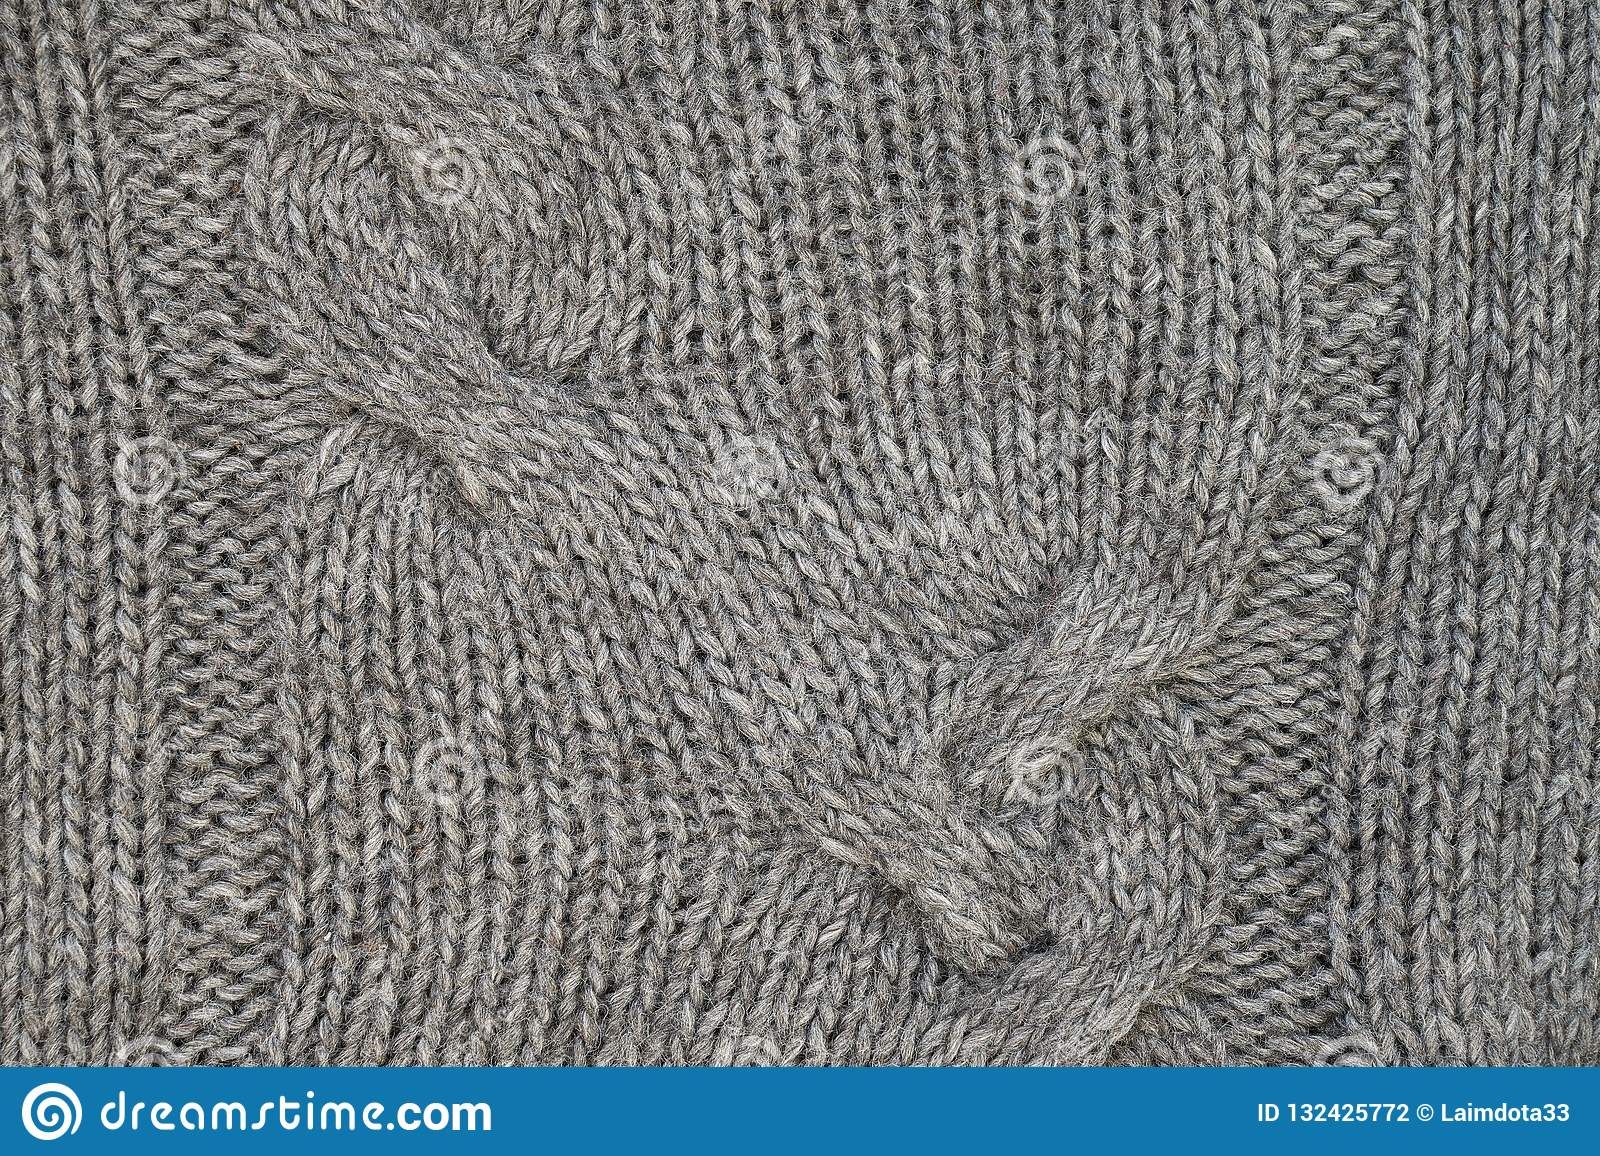 4678010bd2736 Gray knitted texture with a relief pattern. Handmade Knitwear. Background